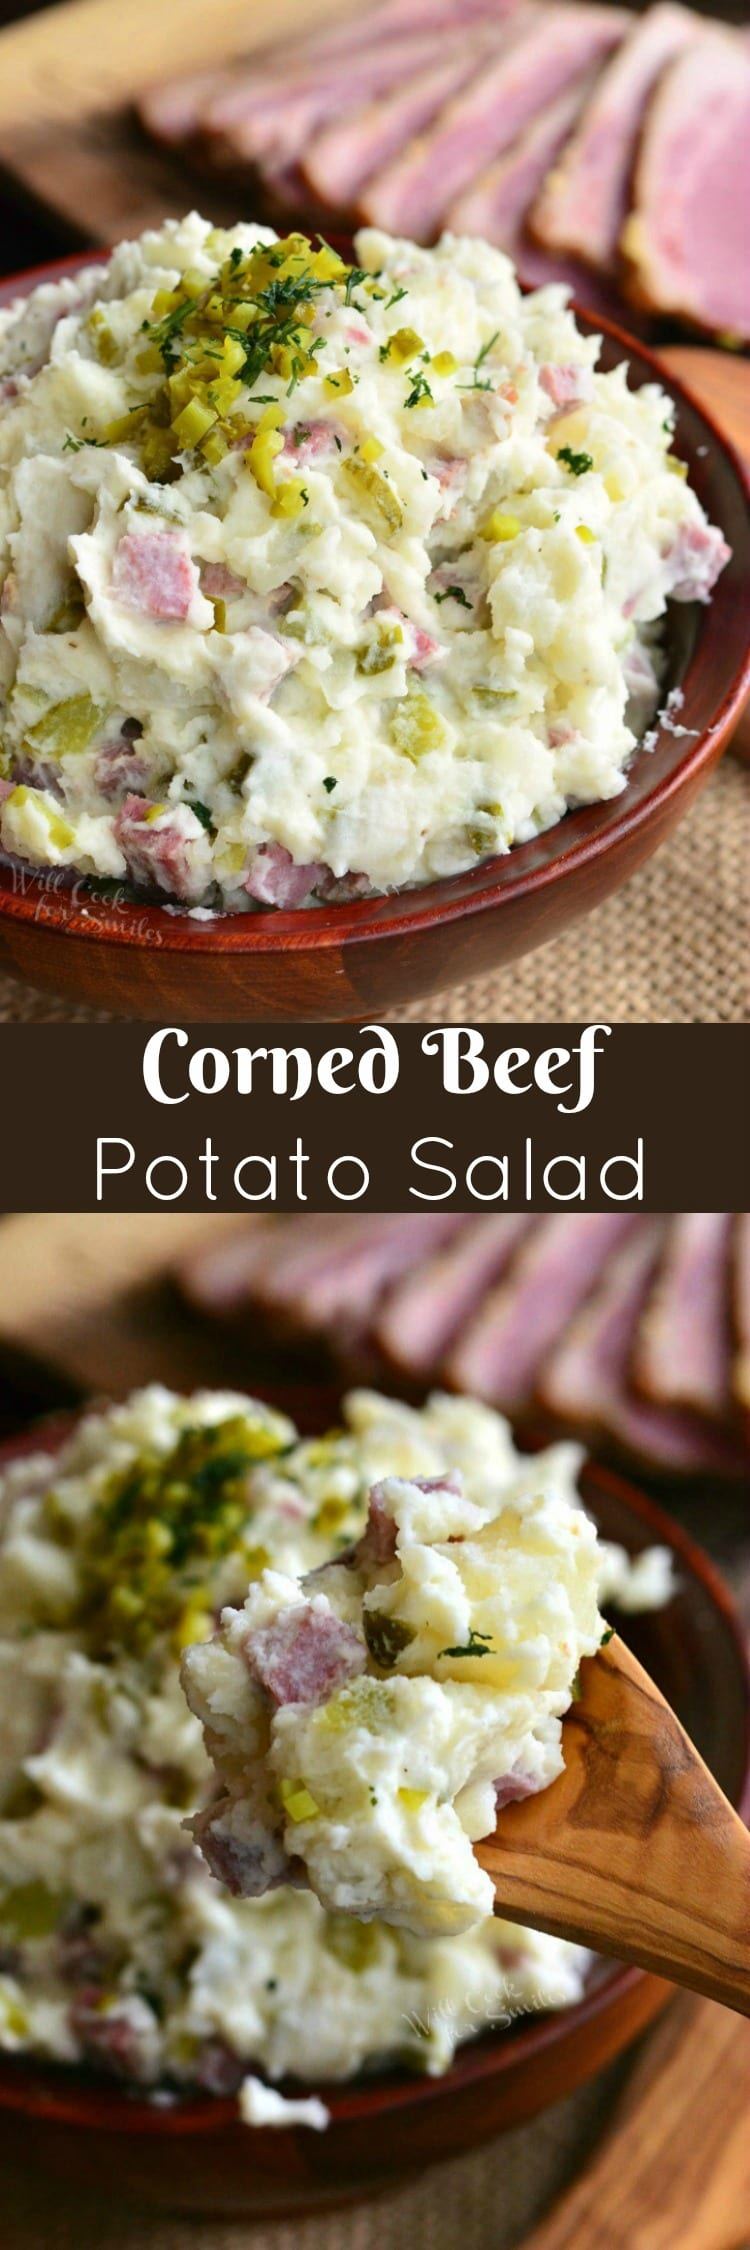 top photo is Corned Beef Potato Salad in a bowl bottom photo is potato salad on a wood spoon